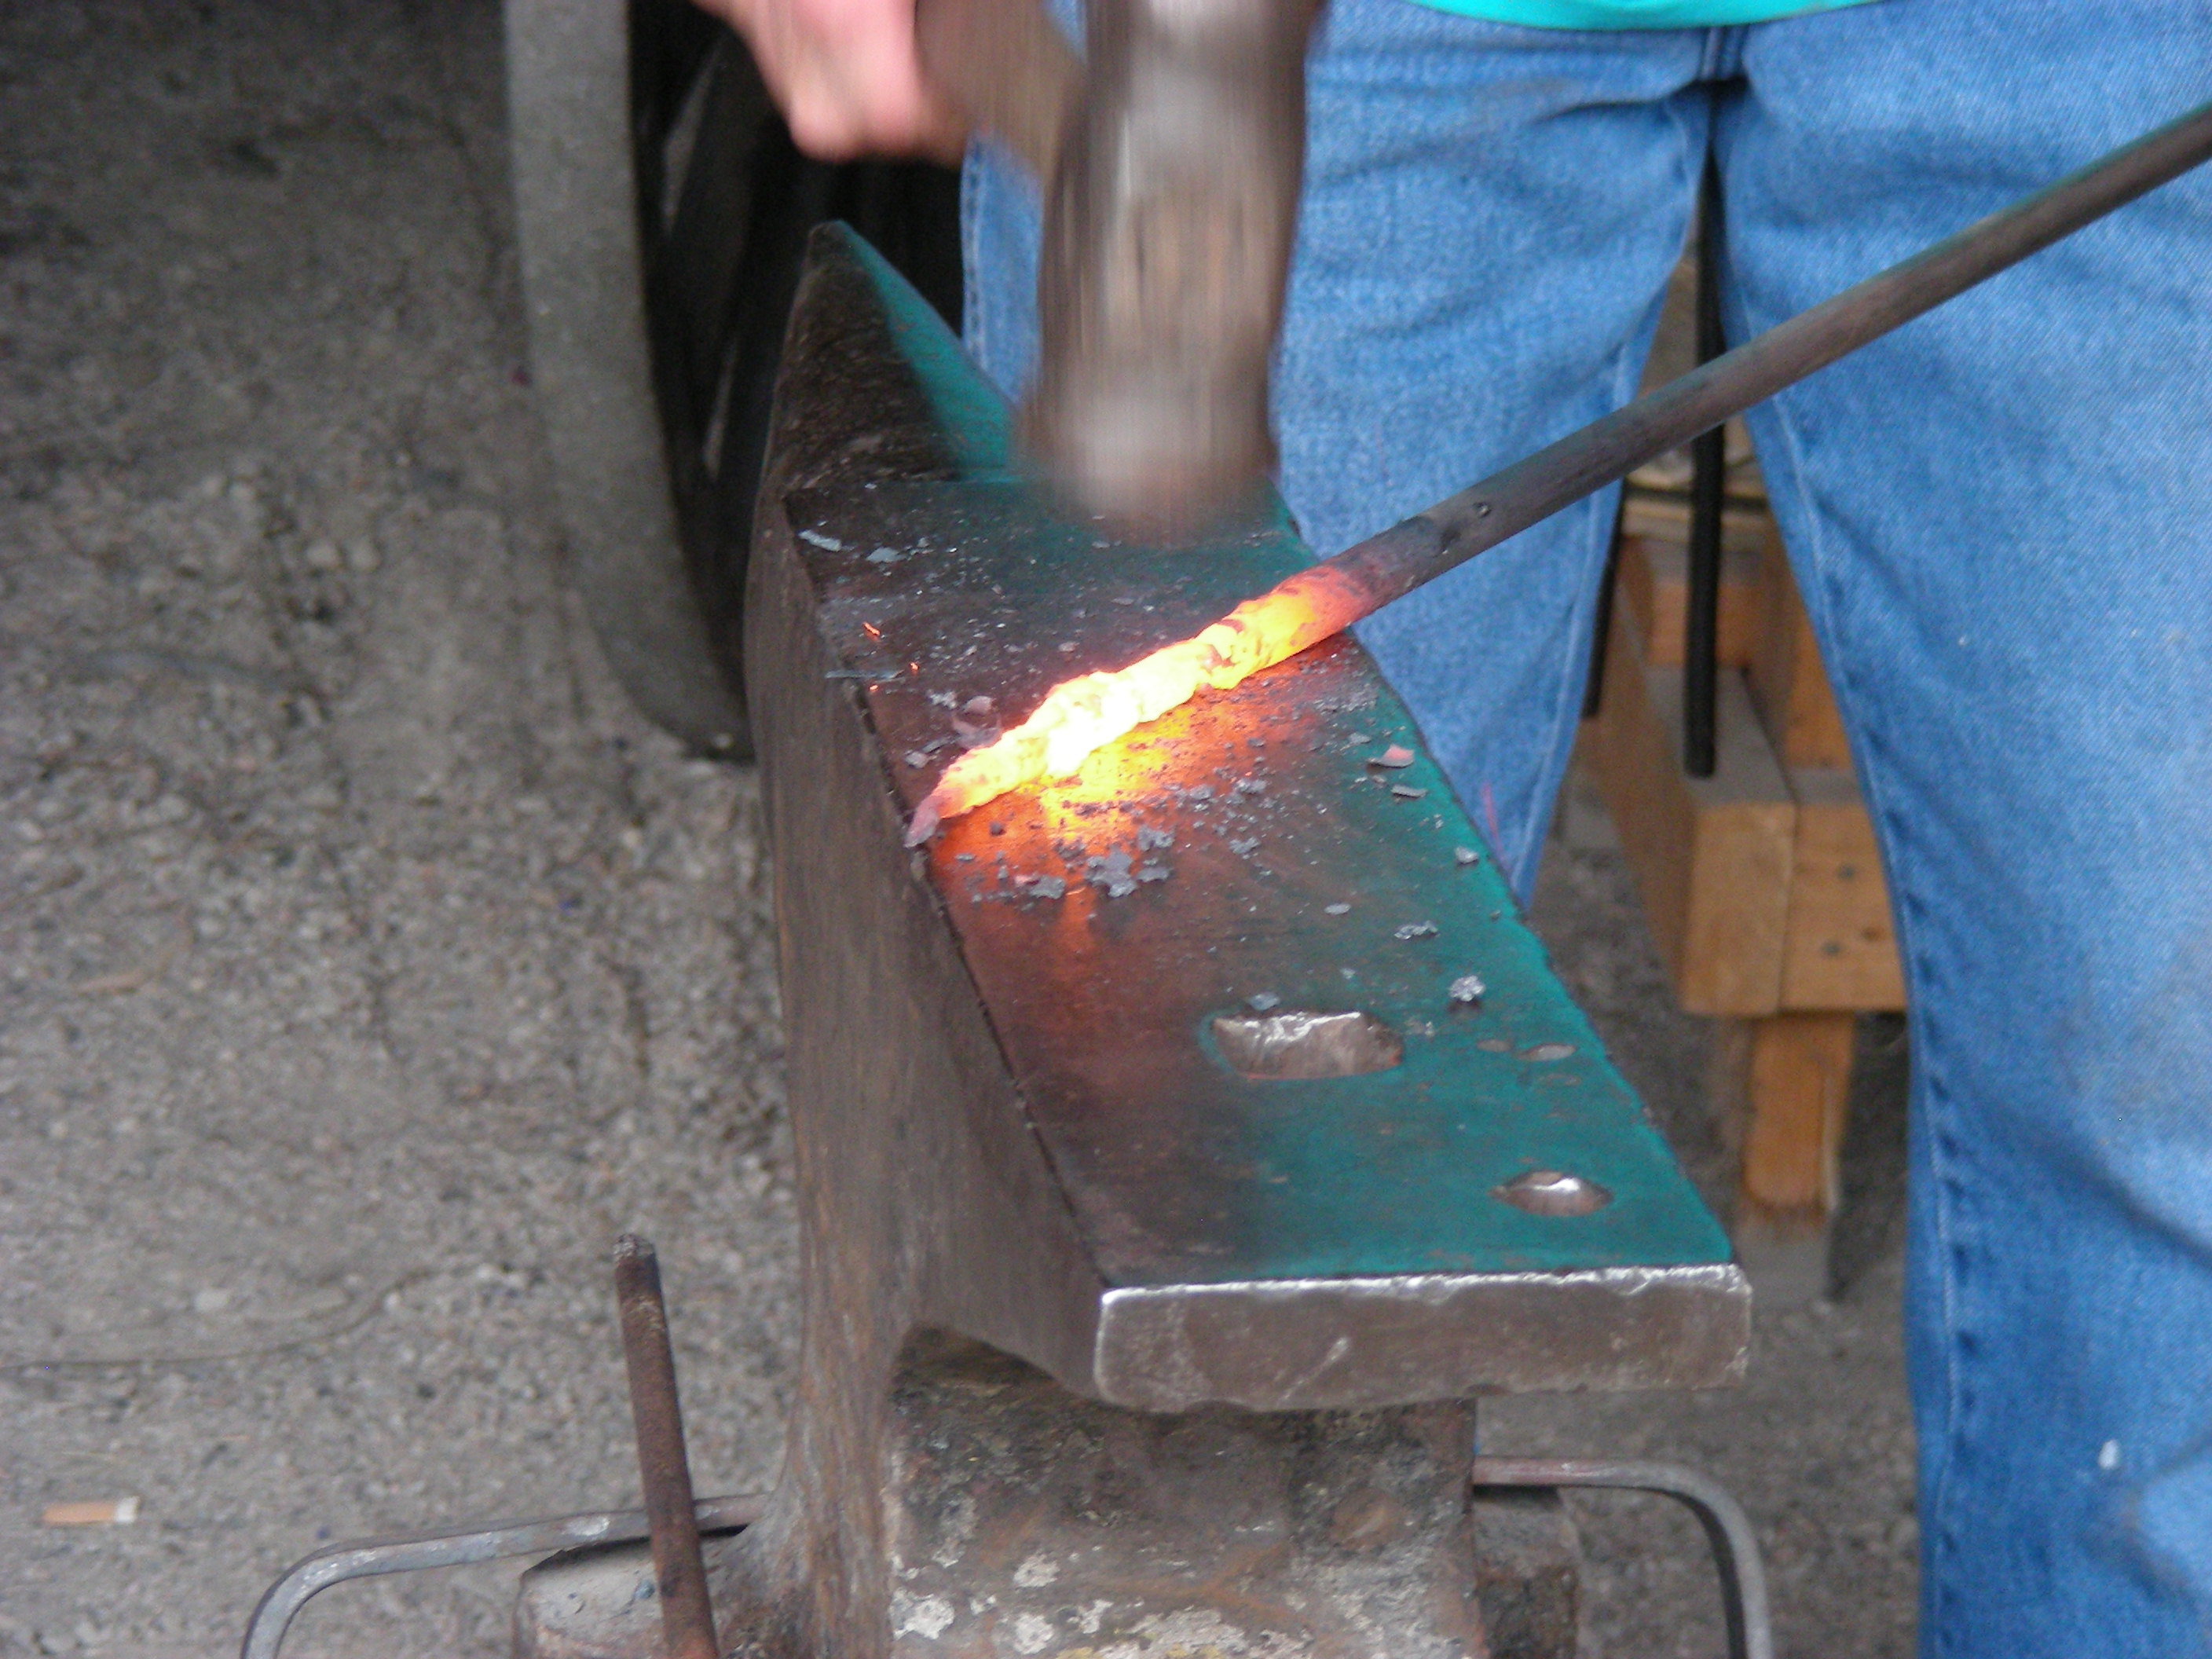 One of Four Mile's blacksmiths hammers a piece of hot steel